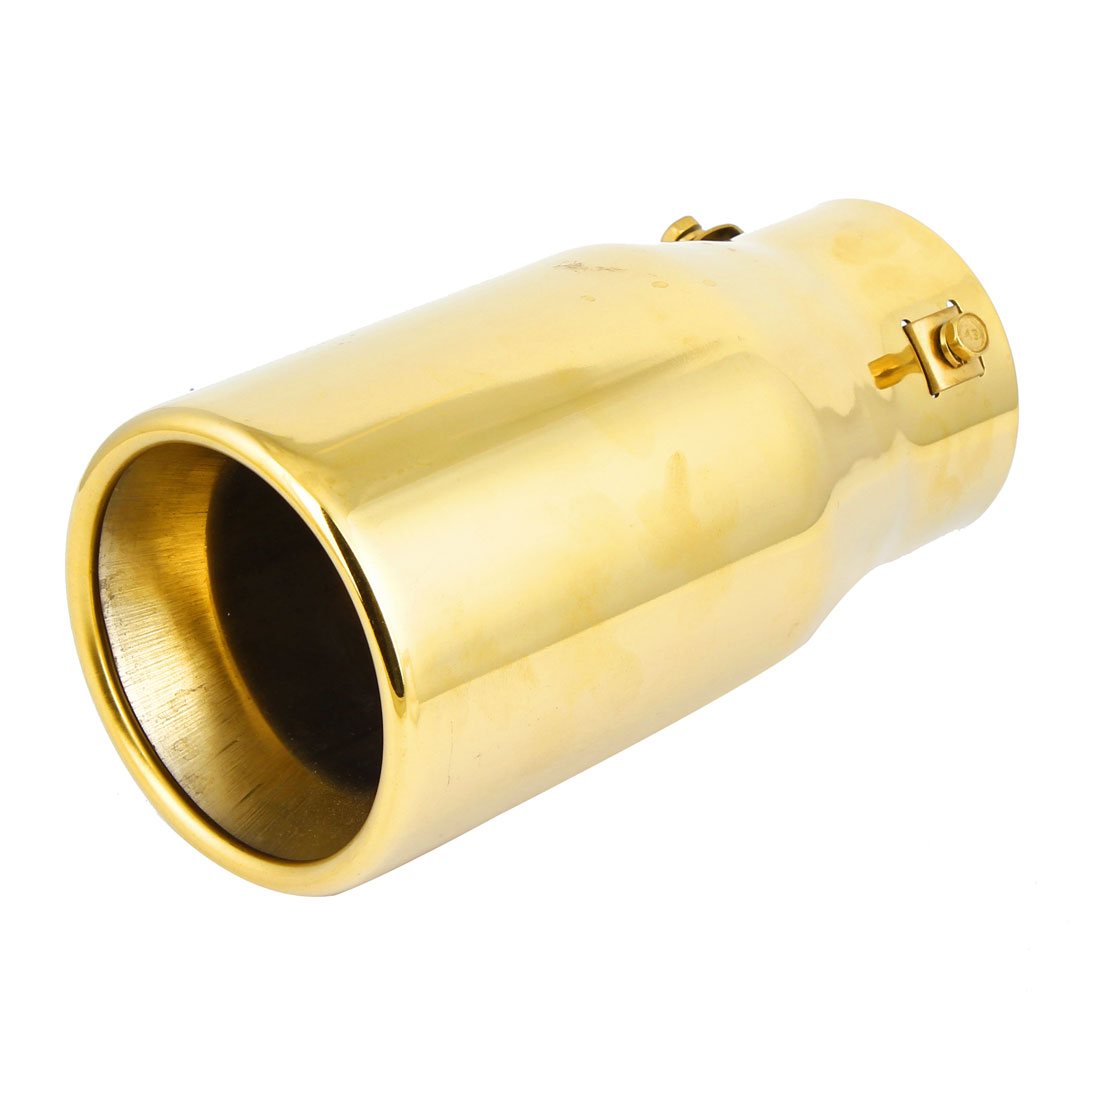 Vehicle Car 86mm Dia Rolled Exhaust Muffler Tip Pipe Gold Tone for Toyota Octavia